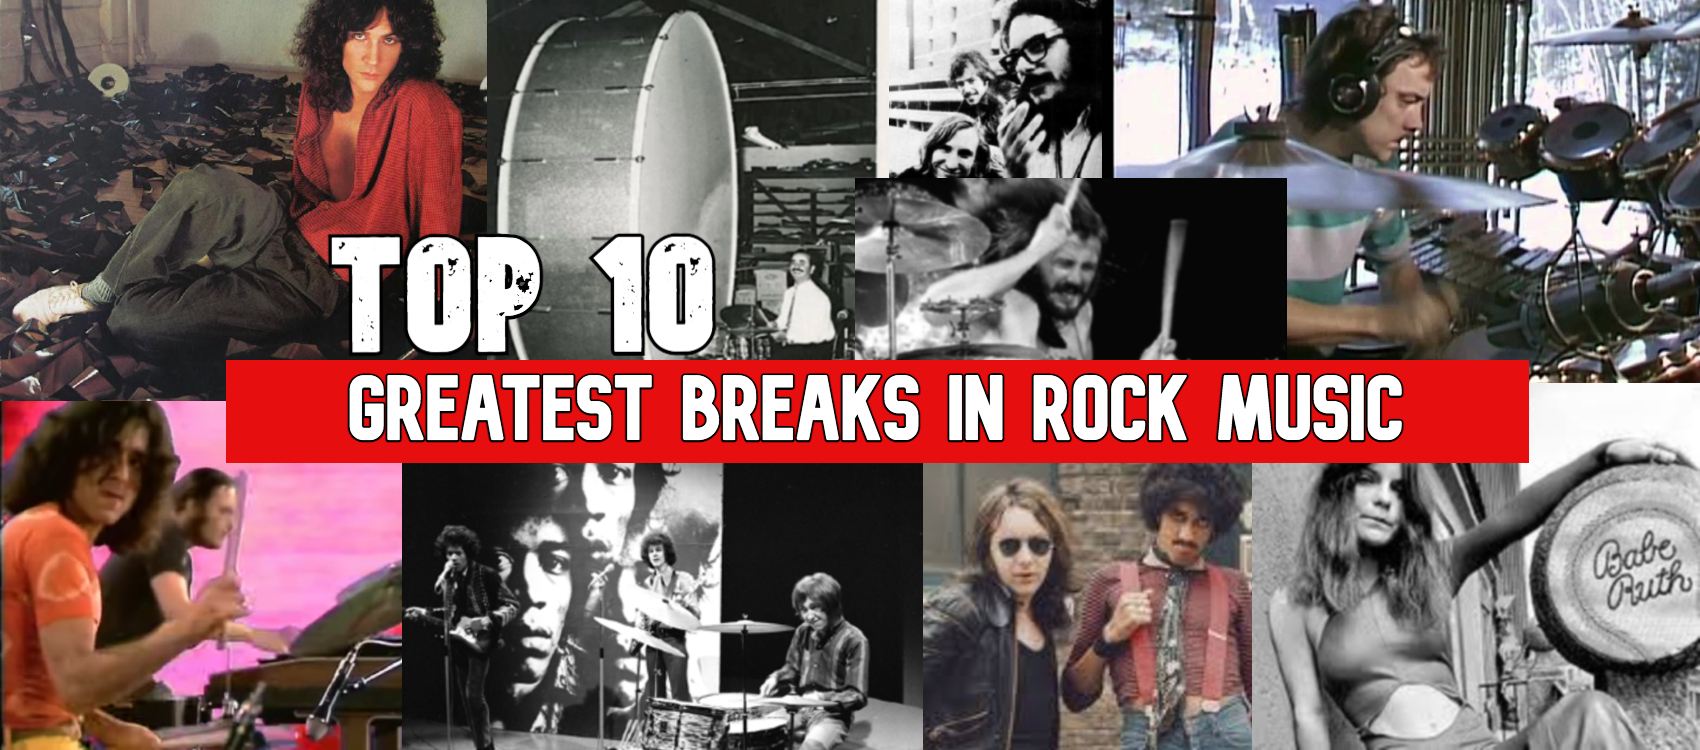 Banner for Top 10 Greatest Break In Rock Music featuring drummers and bands including Neal Peart, Mitch Mitchell & Thin Lizzy